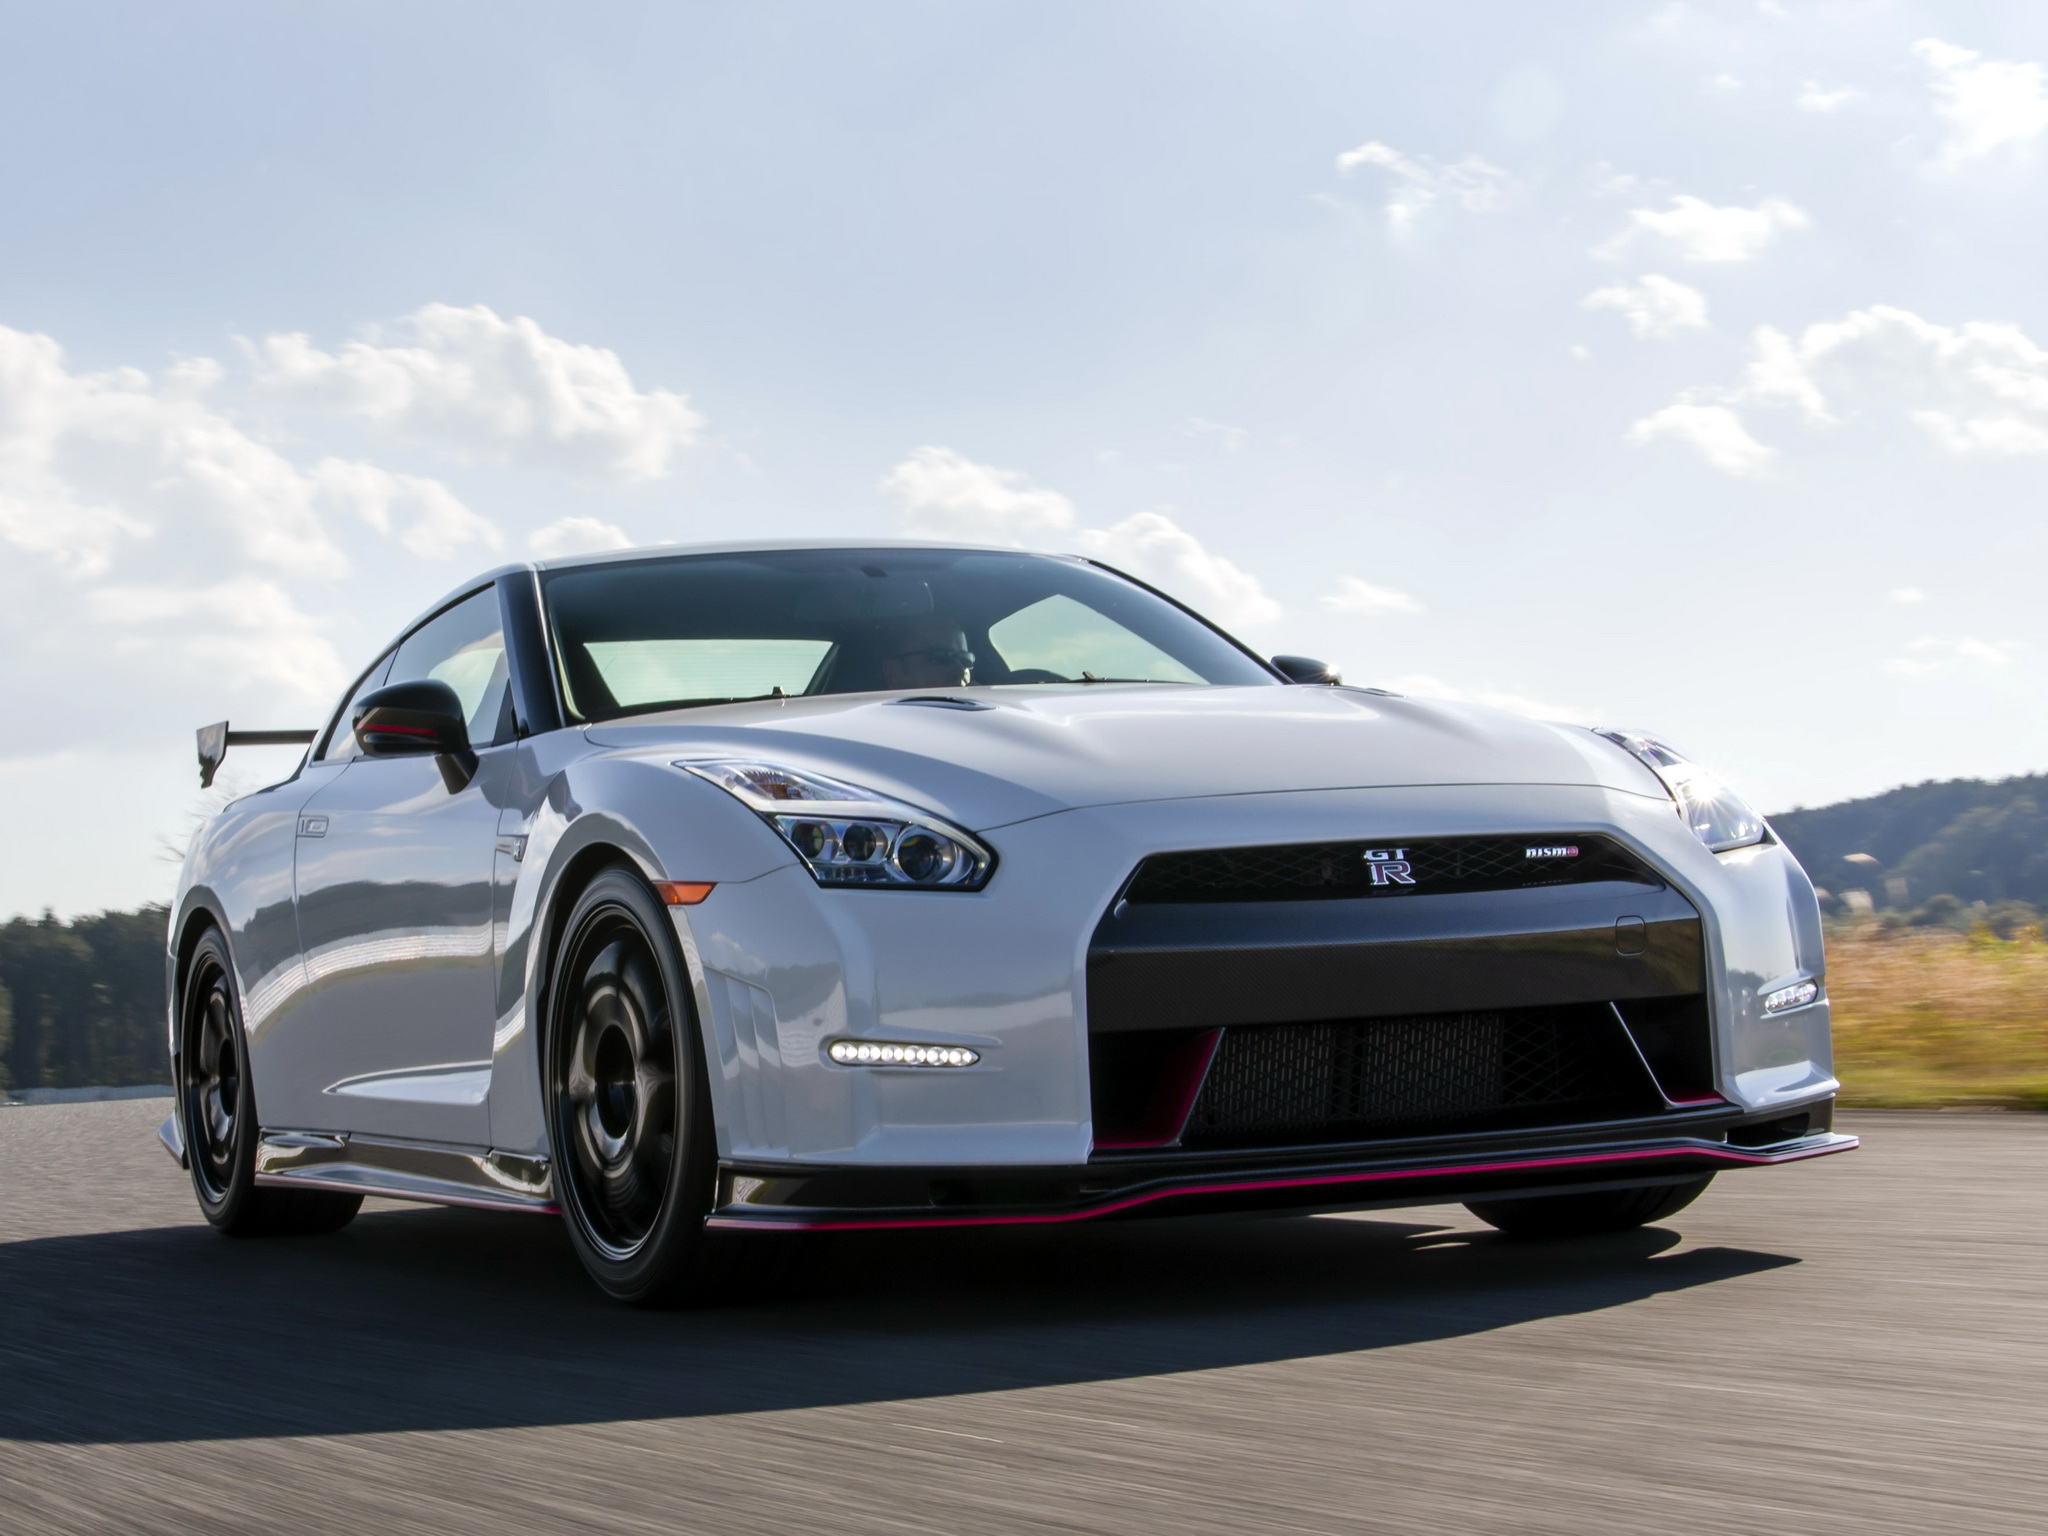 2014 nismo nissan gtr r35 supercar g wallpaper 2048x1536 194029 wallpaperup. Black Bedroom Furniture Sets. Home Design Ideas